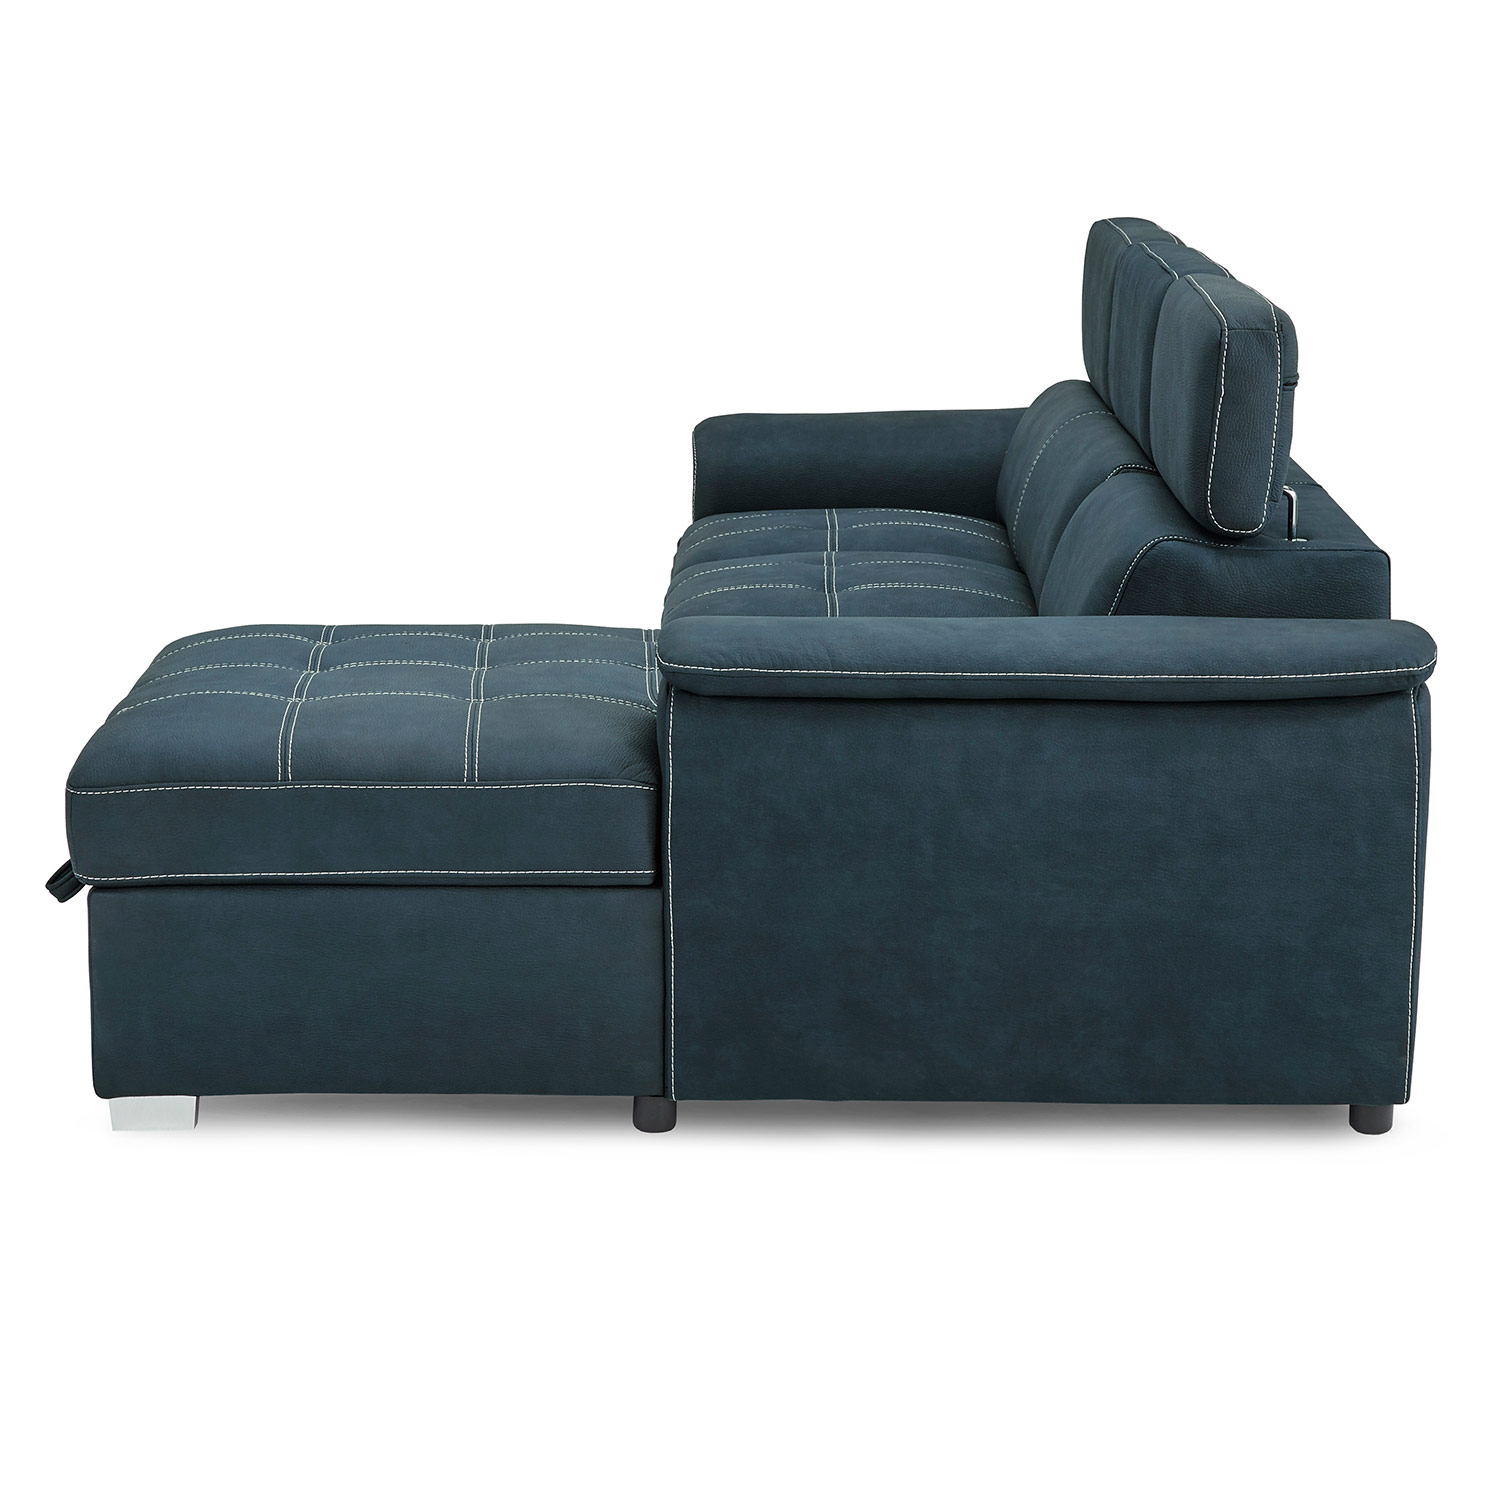 Homelegance Ferriday Sectional with Pull-out Bed and Hidden Storage - Blue